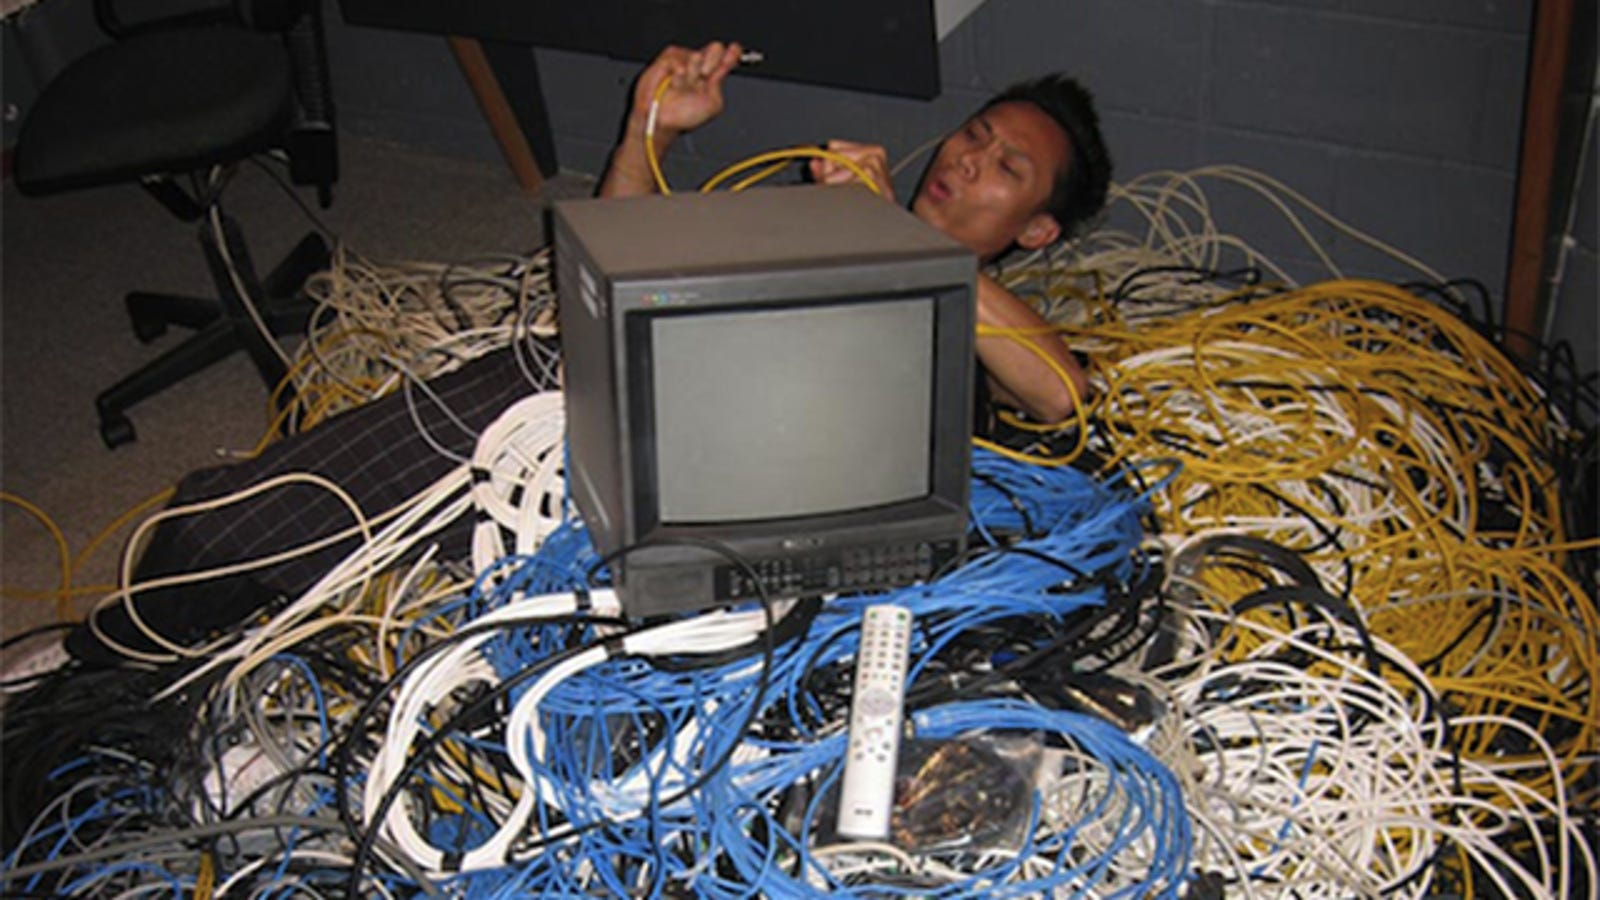 Space Saving Design Simplifies In Wall Wiring And Keeps Messy Cables Five Tips To Get Rid Of Your Tv Cable Mess